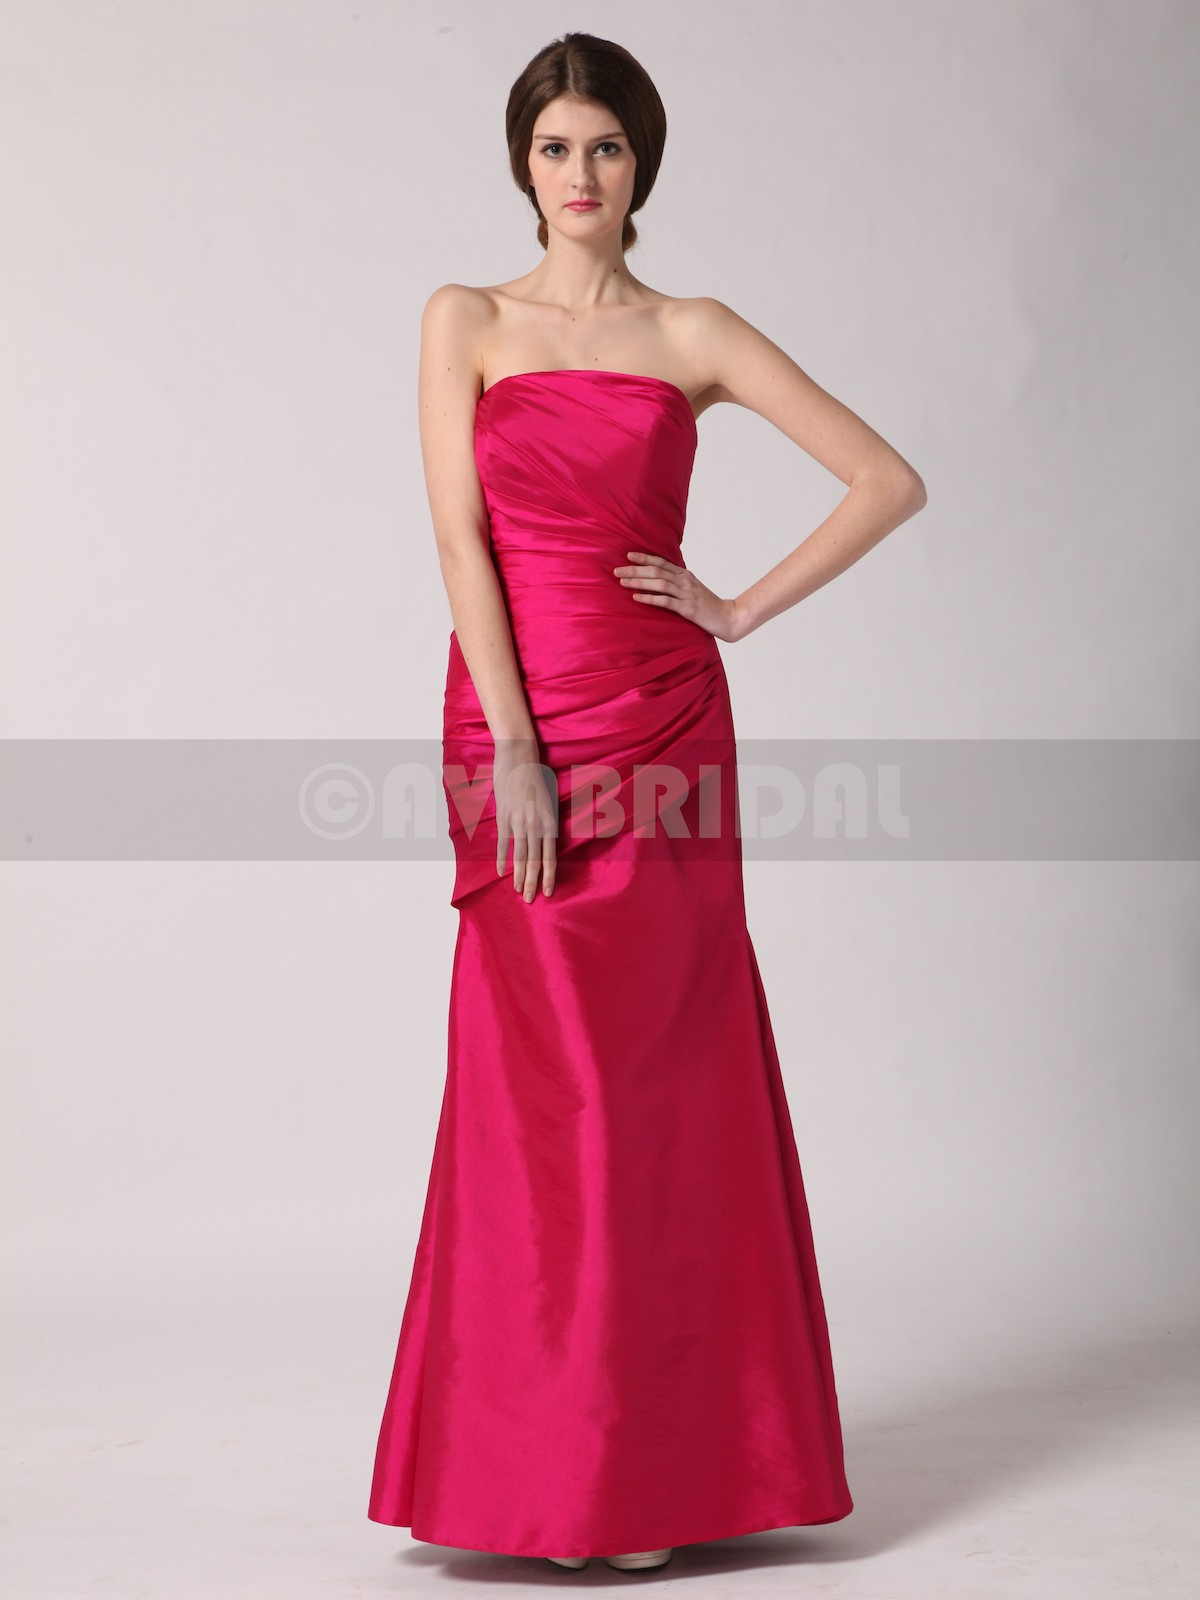 Modern Column Taffeta Bridesmaid Dress B446-Front